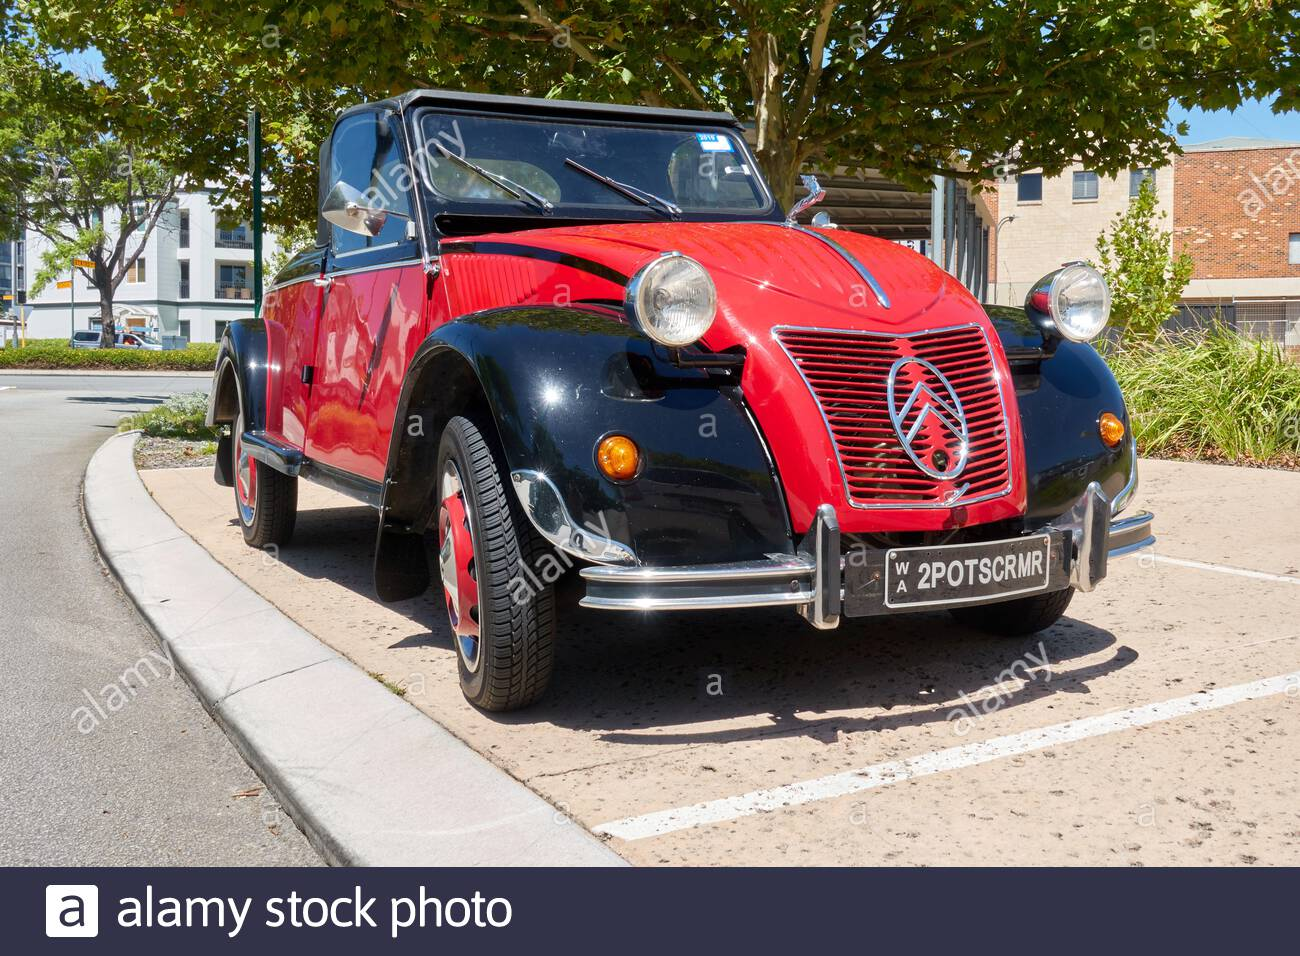 a-red-and-black-vintage-citroen-2cv-car-2EAYRWR.jpg